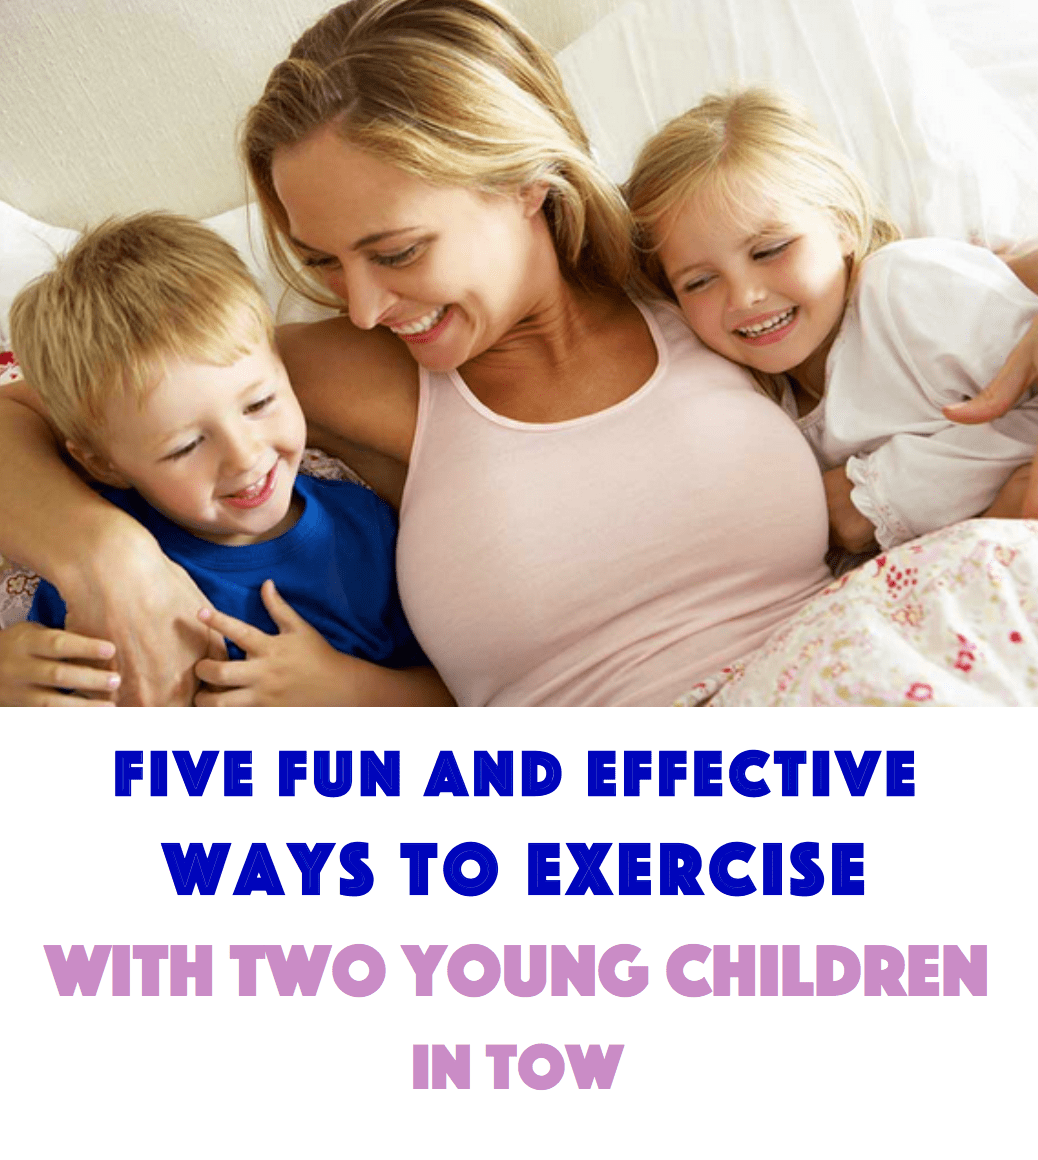 Take a look at these five fun and effective ways to exercise with two young children in tow.